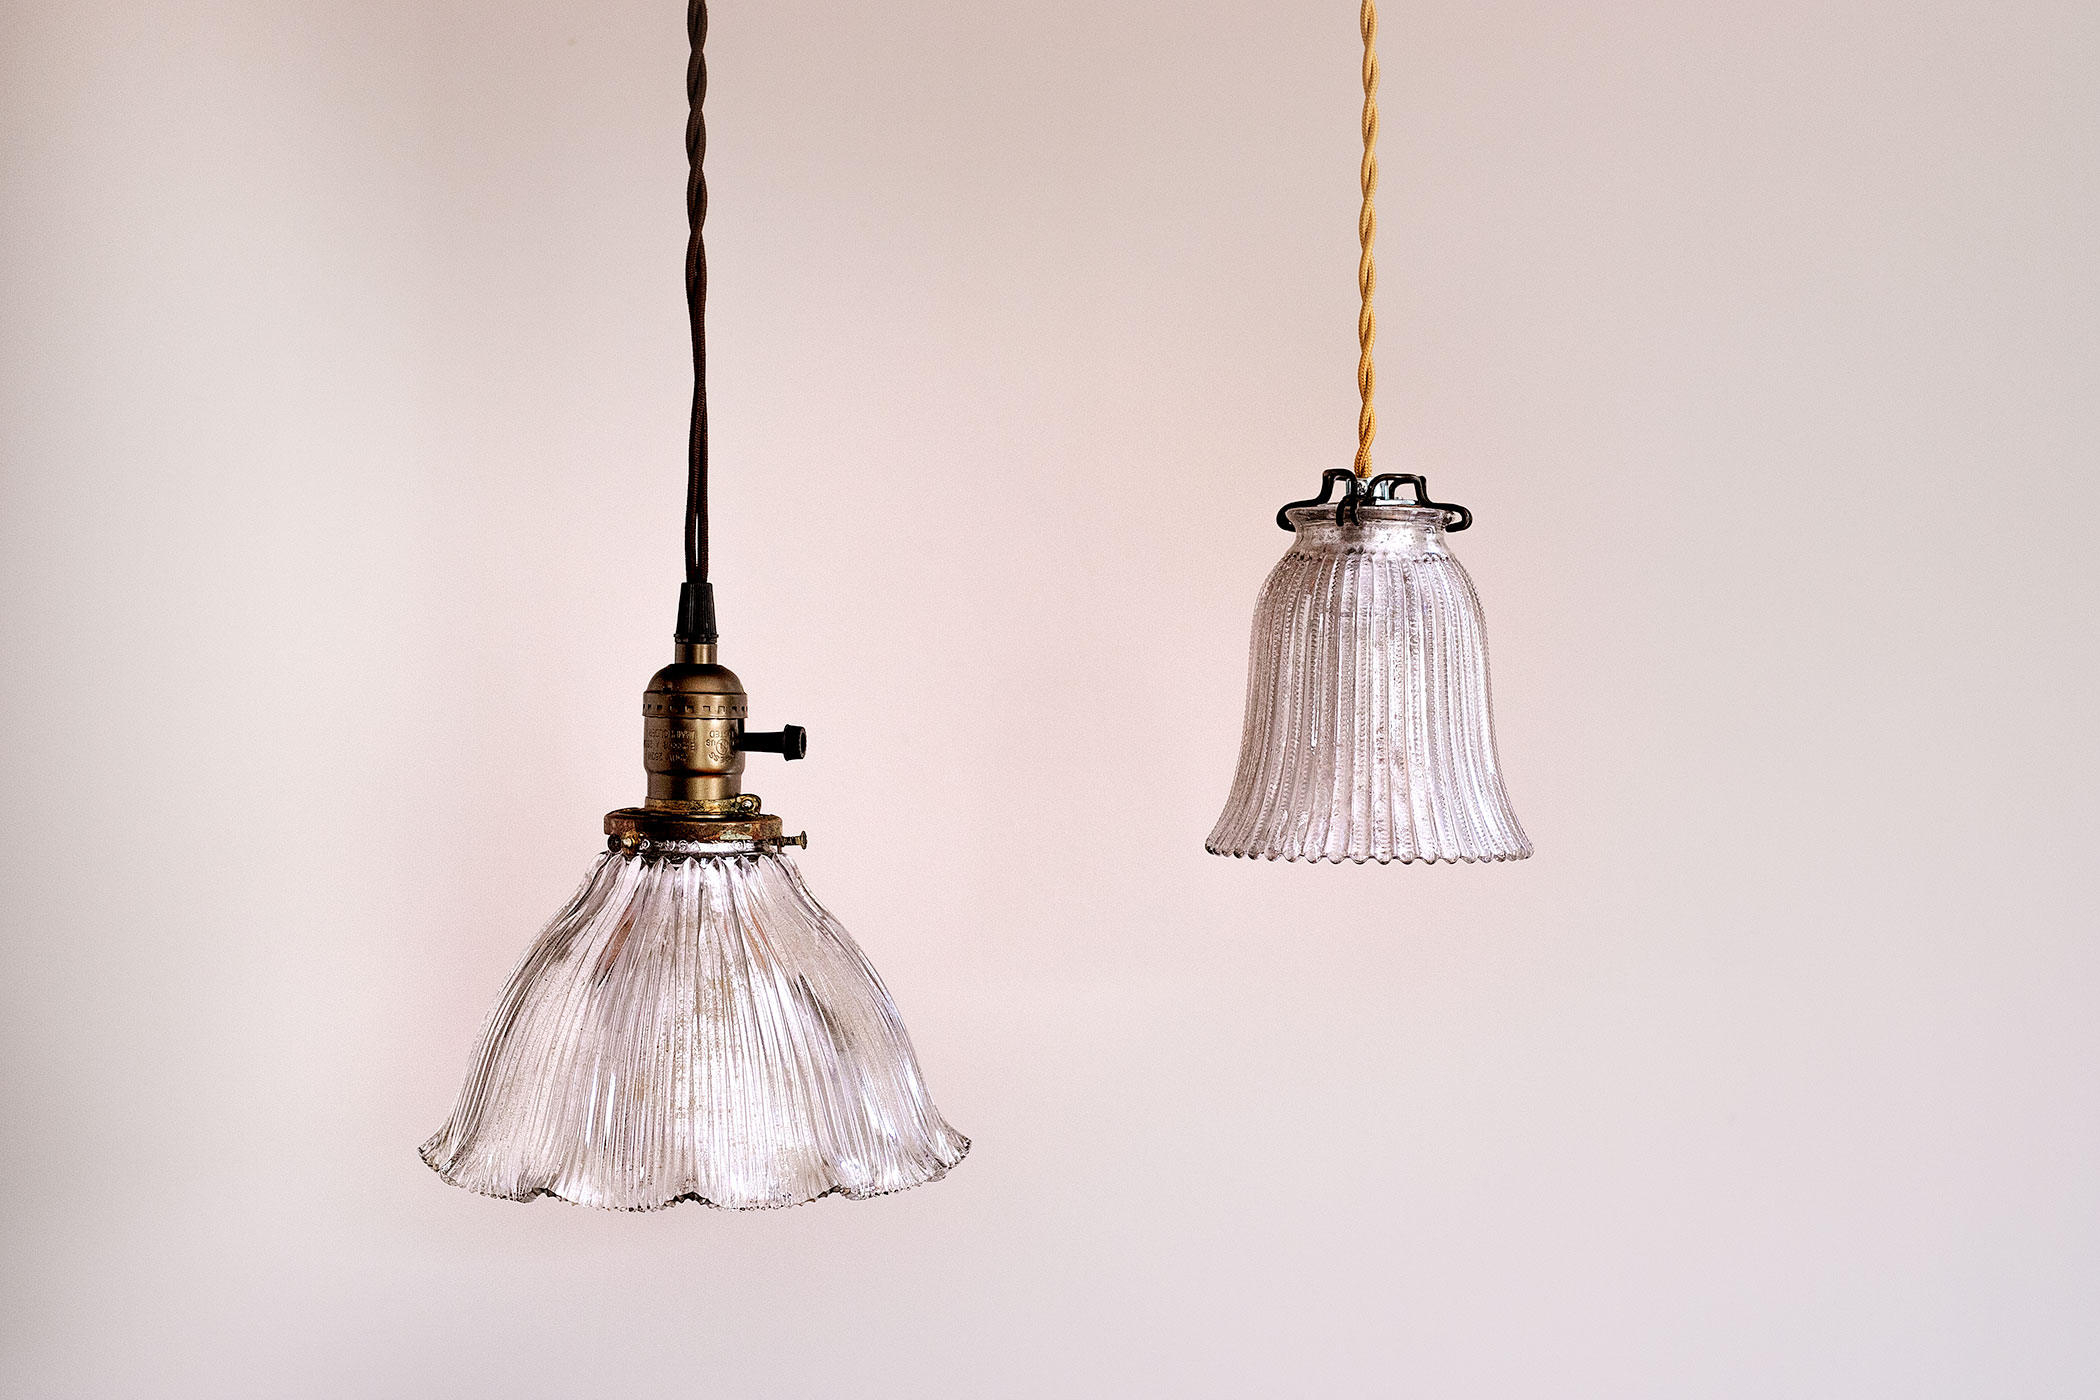 Diy: Vintage Looking Mercury Glass Pendant Lights For $25 Pertaining To Sargent 1 Light Single Bell Pendants (Photo 30 of 30)